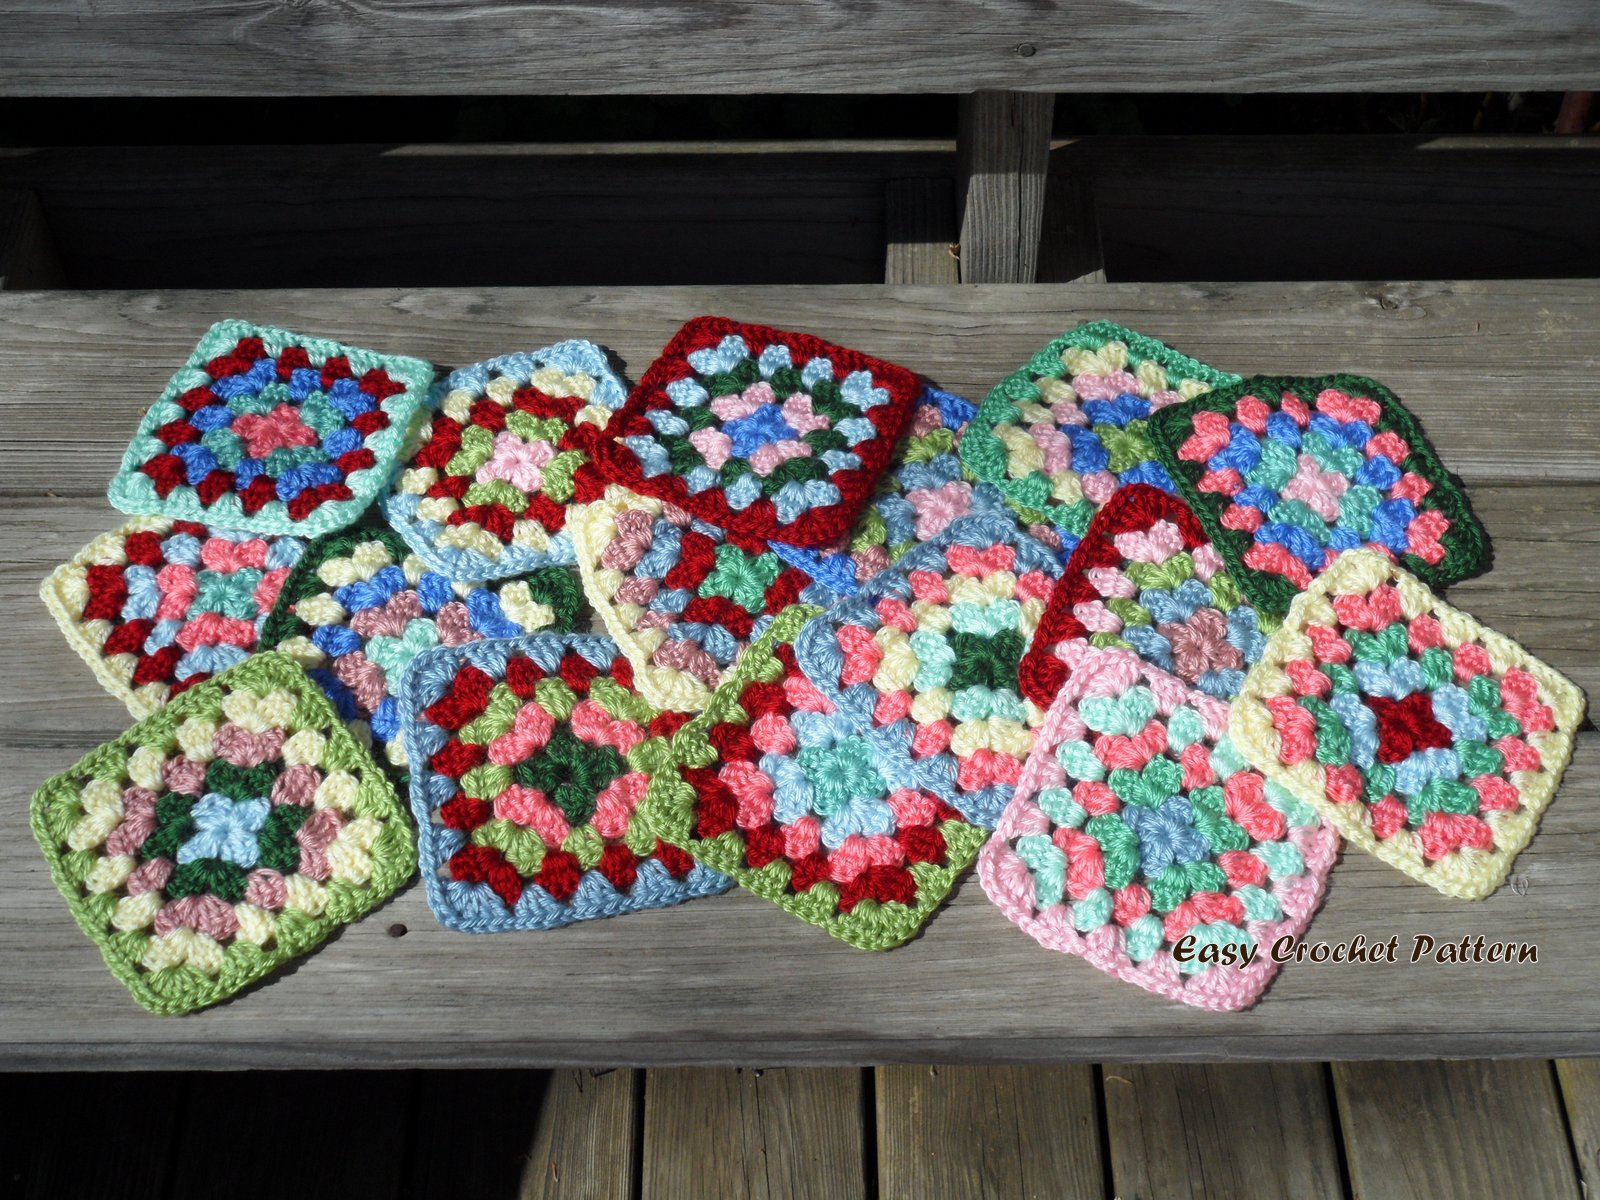 Crochet Easy Granny Square Patterns : Easy Crochet Pattern: Cath Kidston Granny Square Afghan